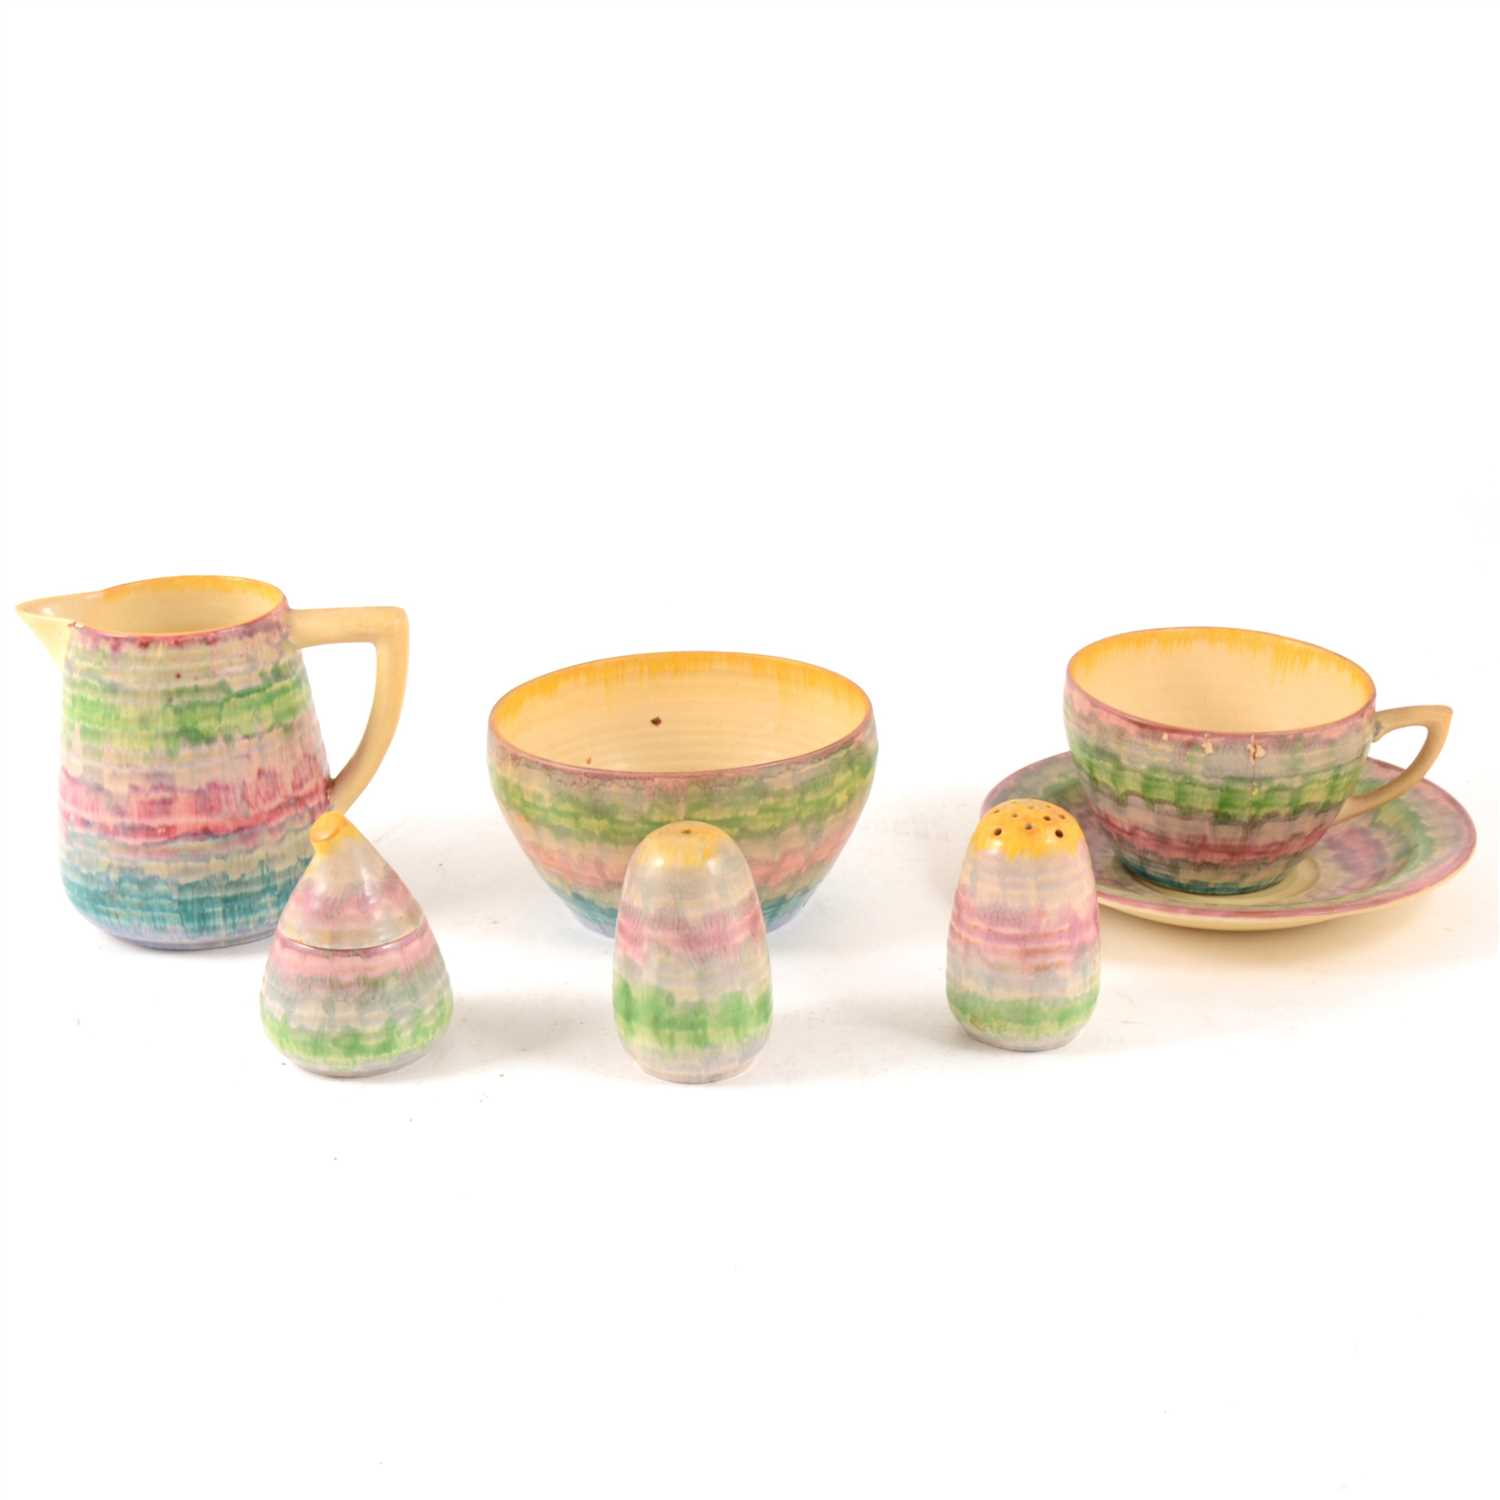 Lot 11-A 'Delecia' pattern part tea set for six by Clarice Cliff, some damages